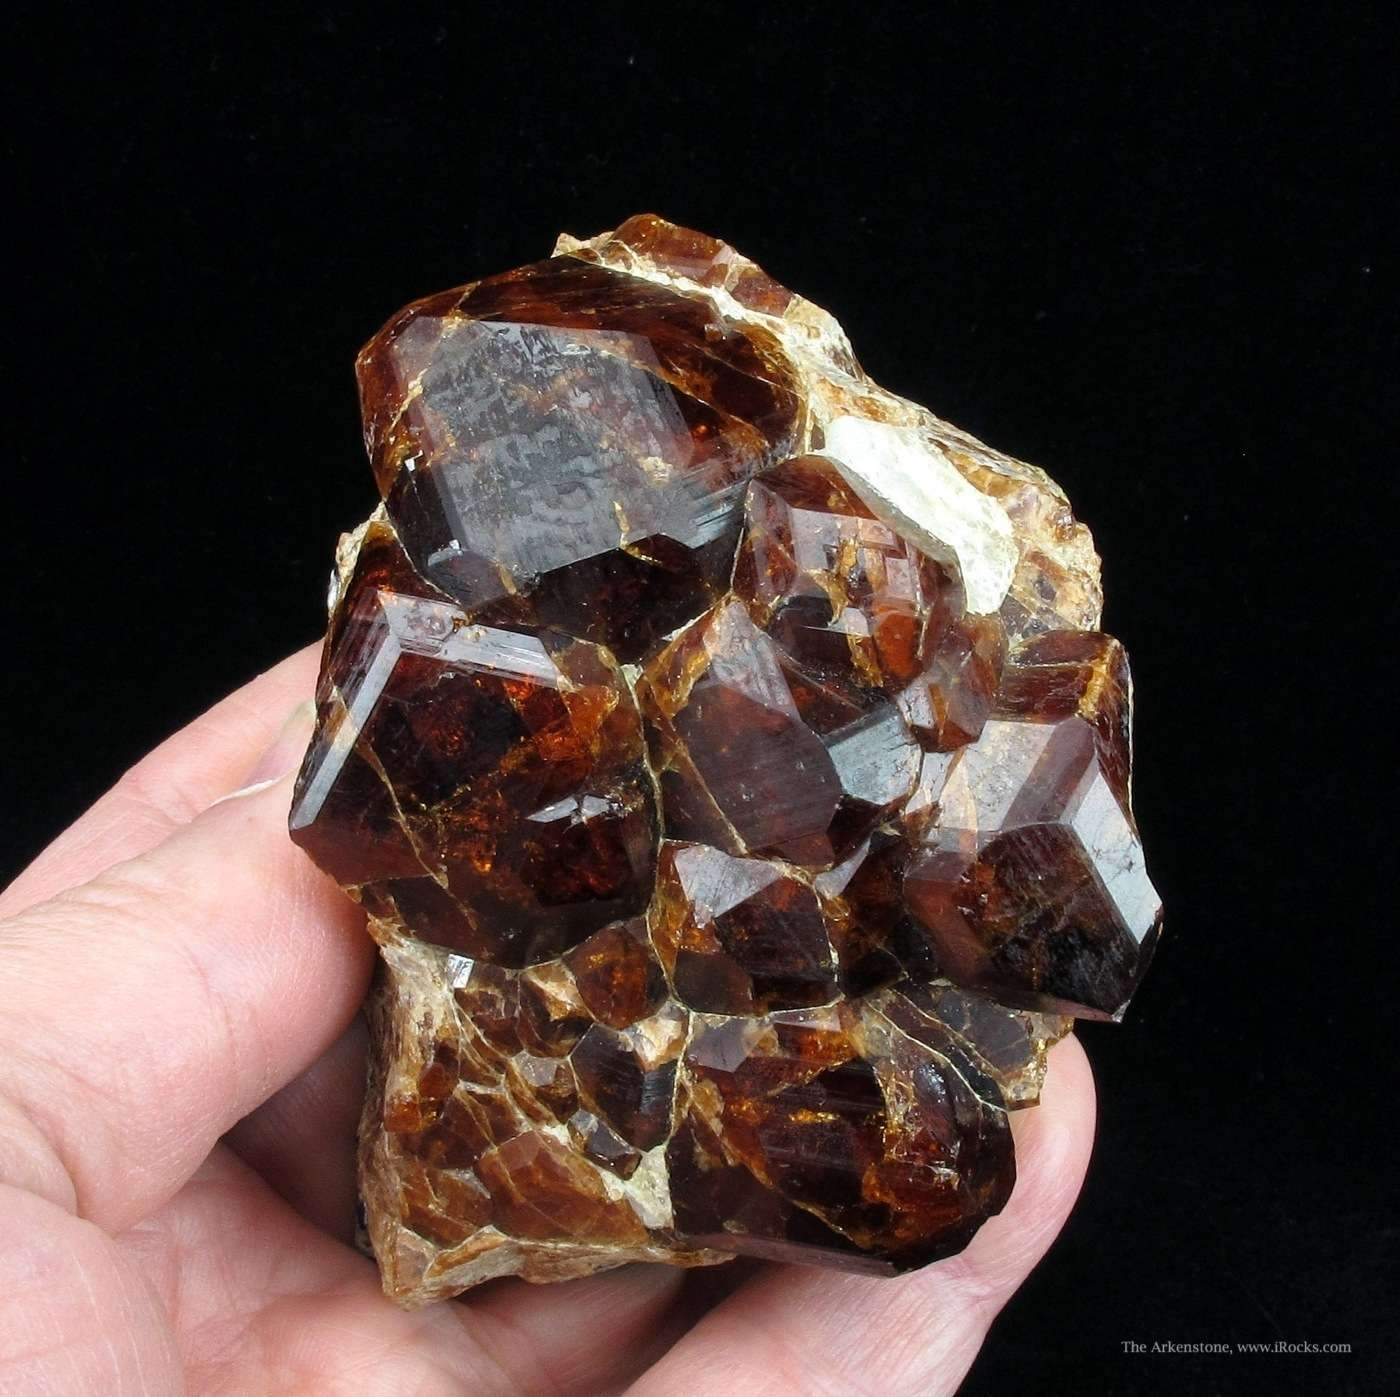 Excellent specimen large dark red Hessonite Garnet crystals emplaced